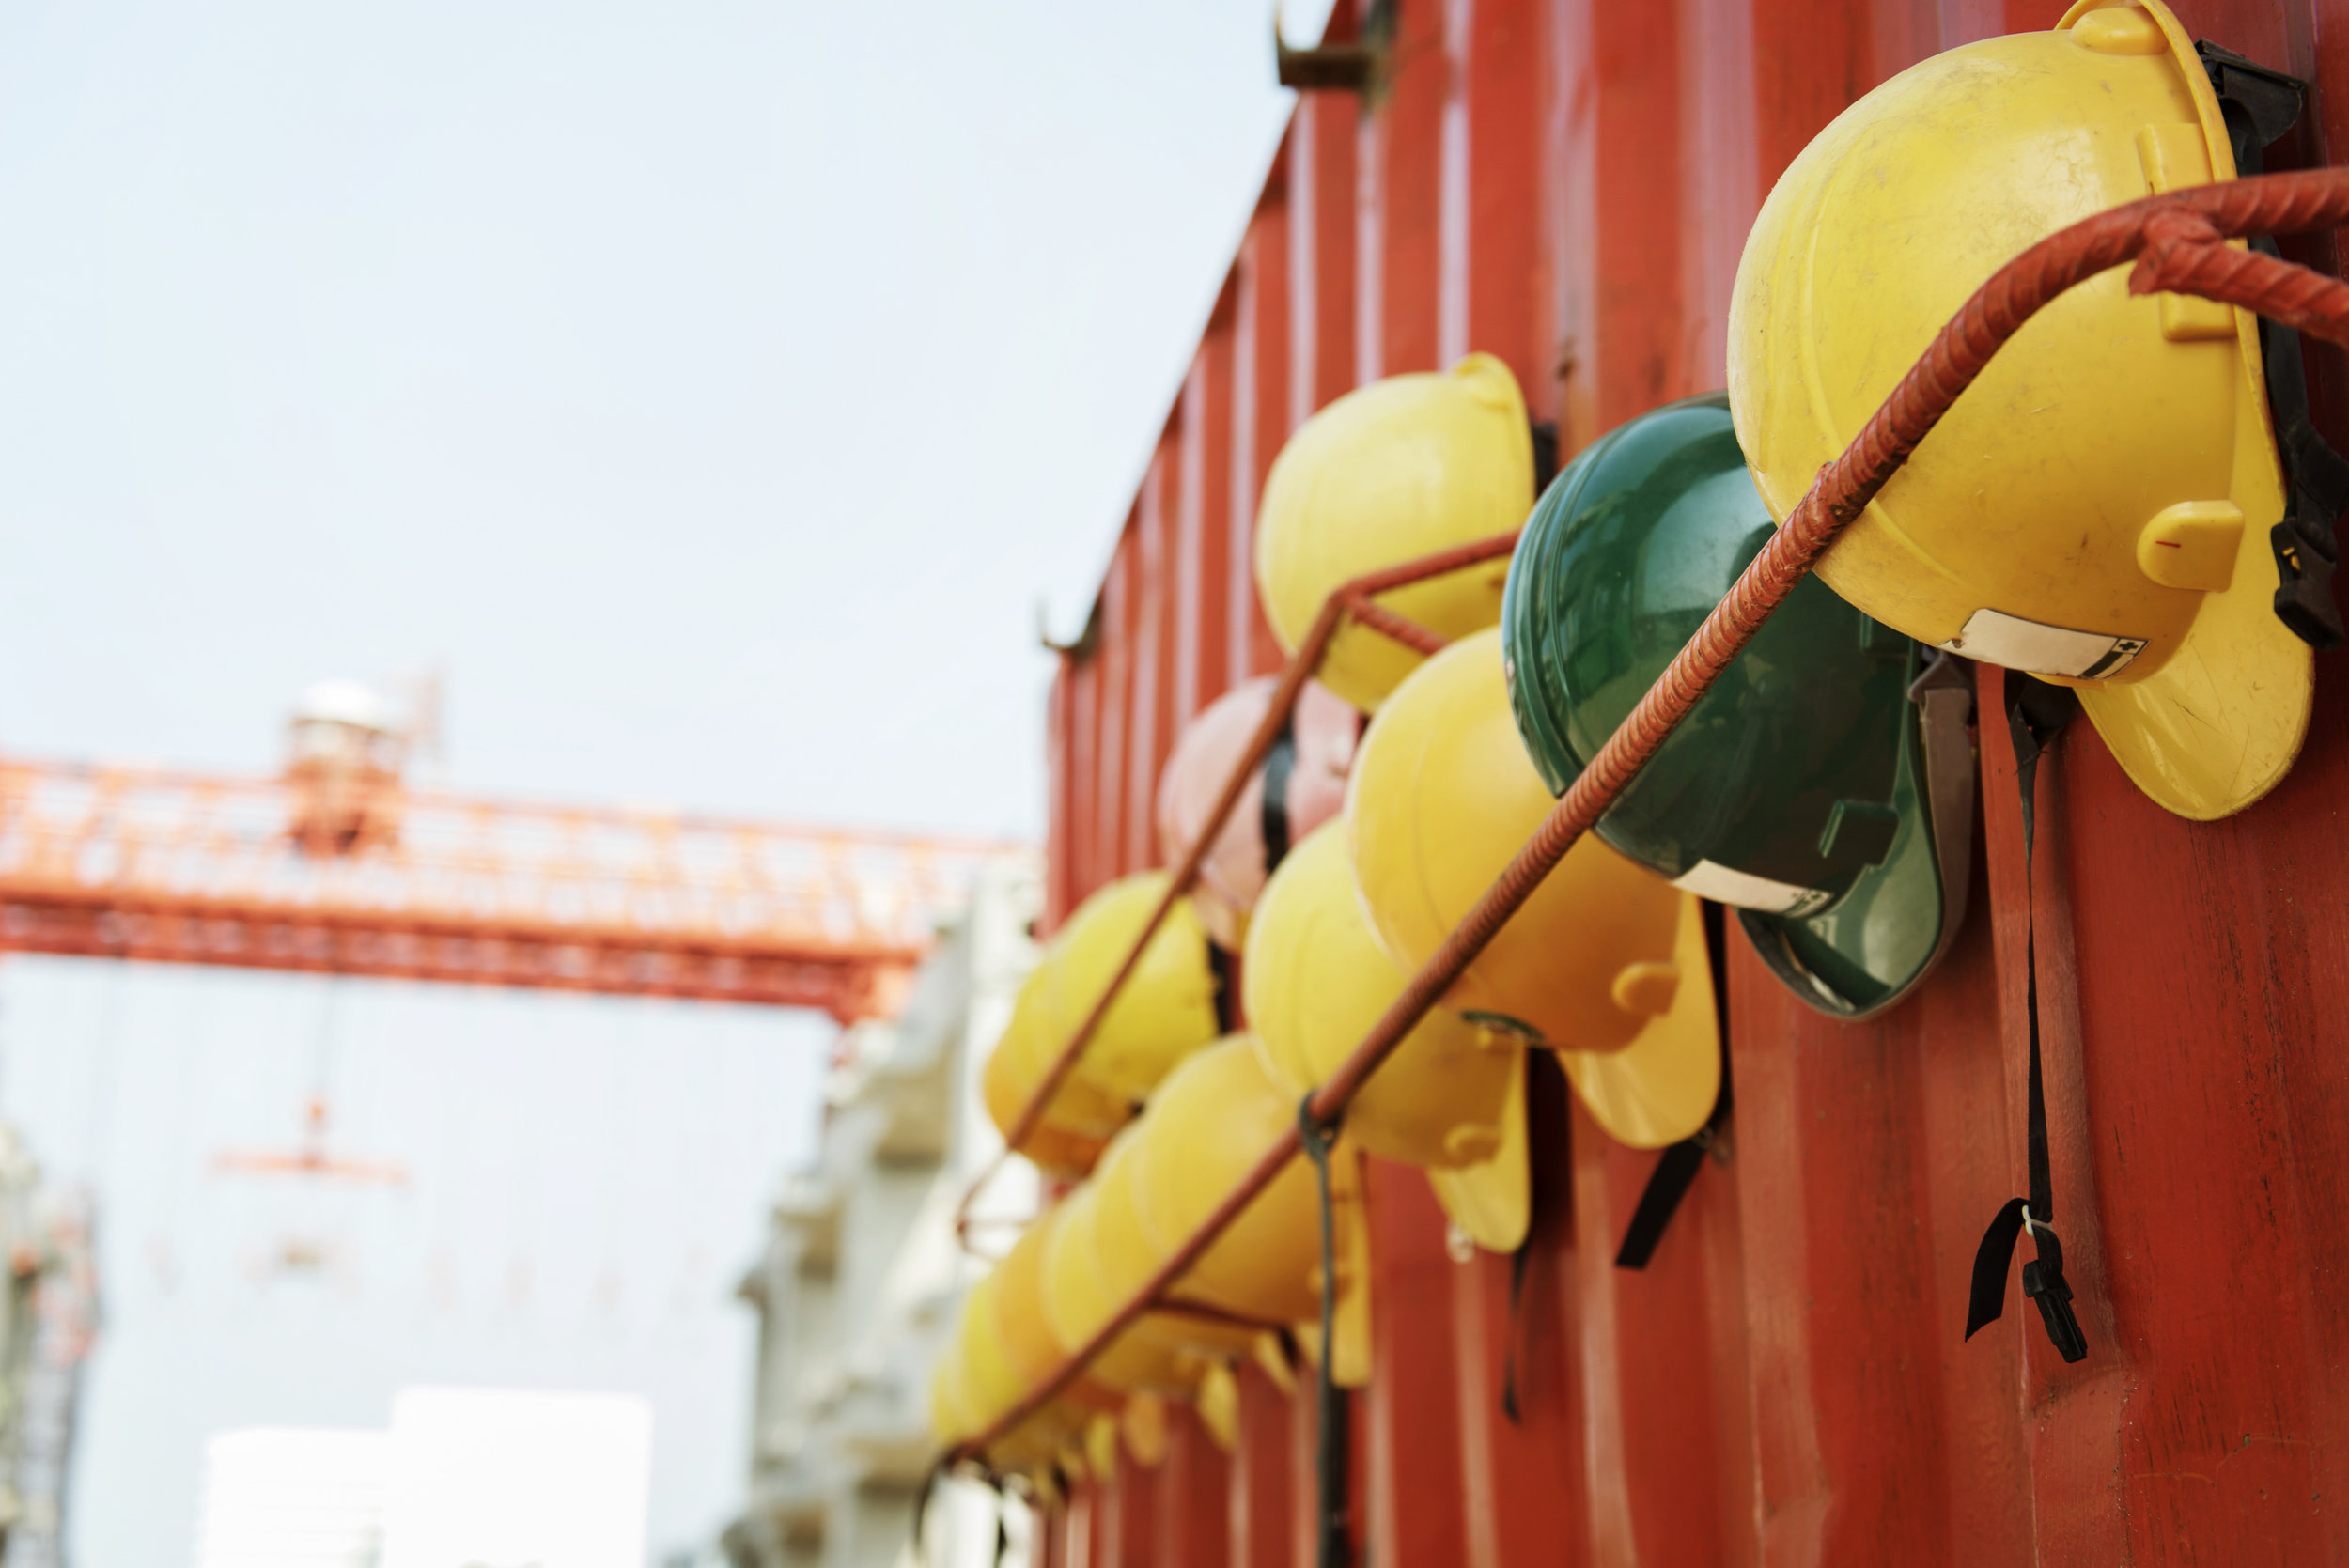 Safety - The only way to ensure projects are successfully completed in a reliable, professional way, is to pay particular heed to safety…